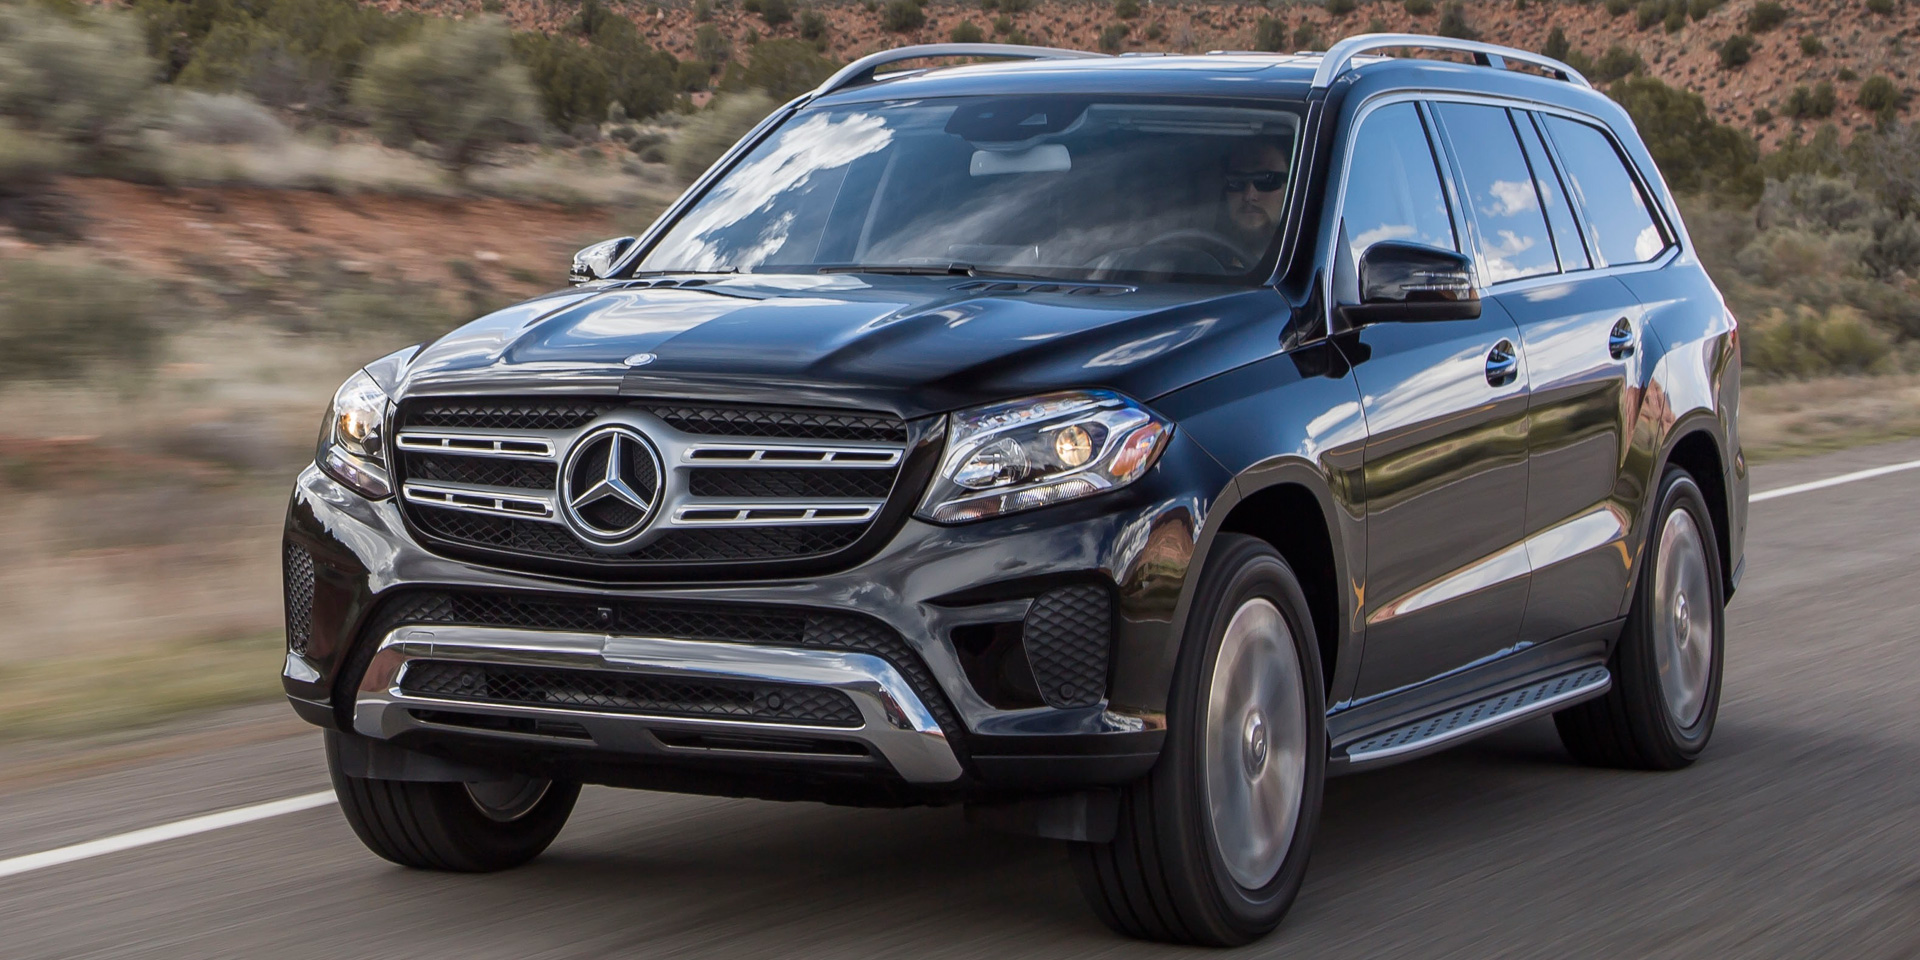 2018 mercedes benz gls vehicles on display chicago auto show. Black Bedroom Furniture Sets. Home Design Ideas